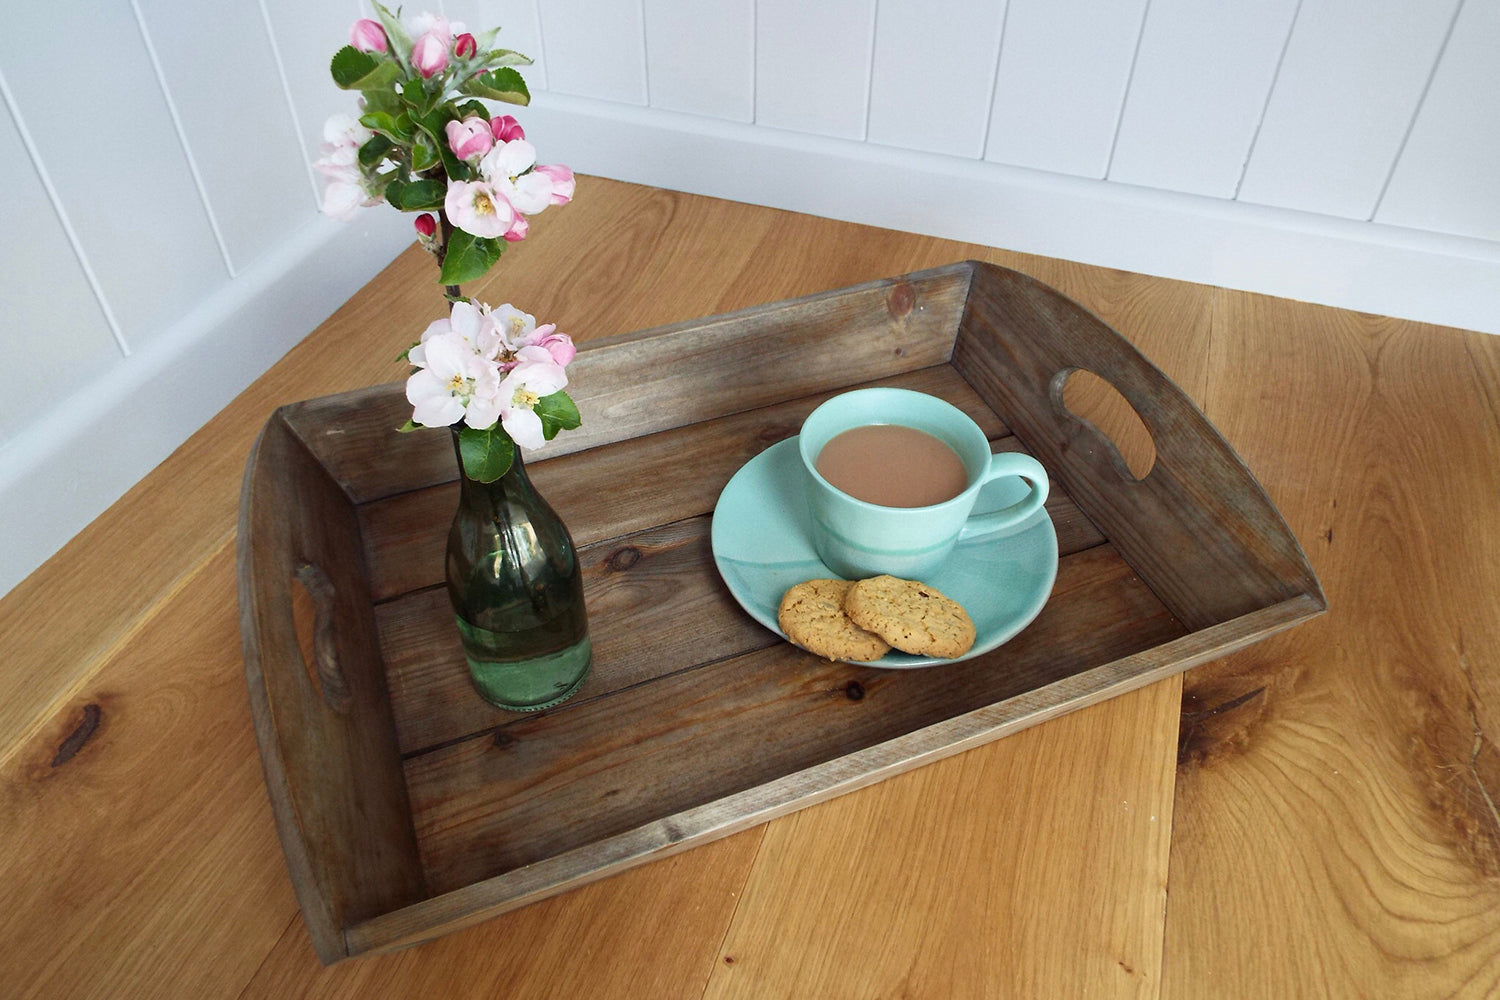 Aged Vintage Tray